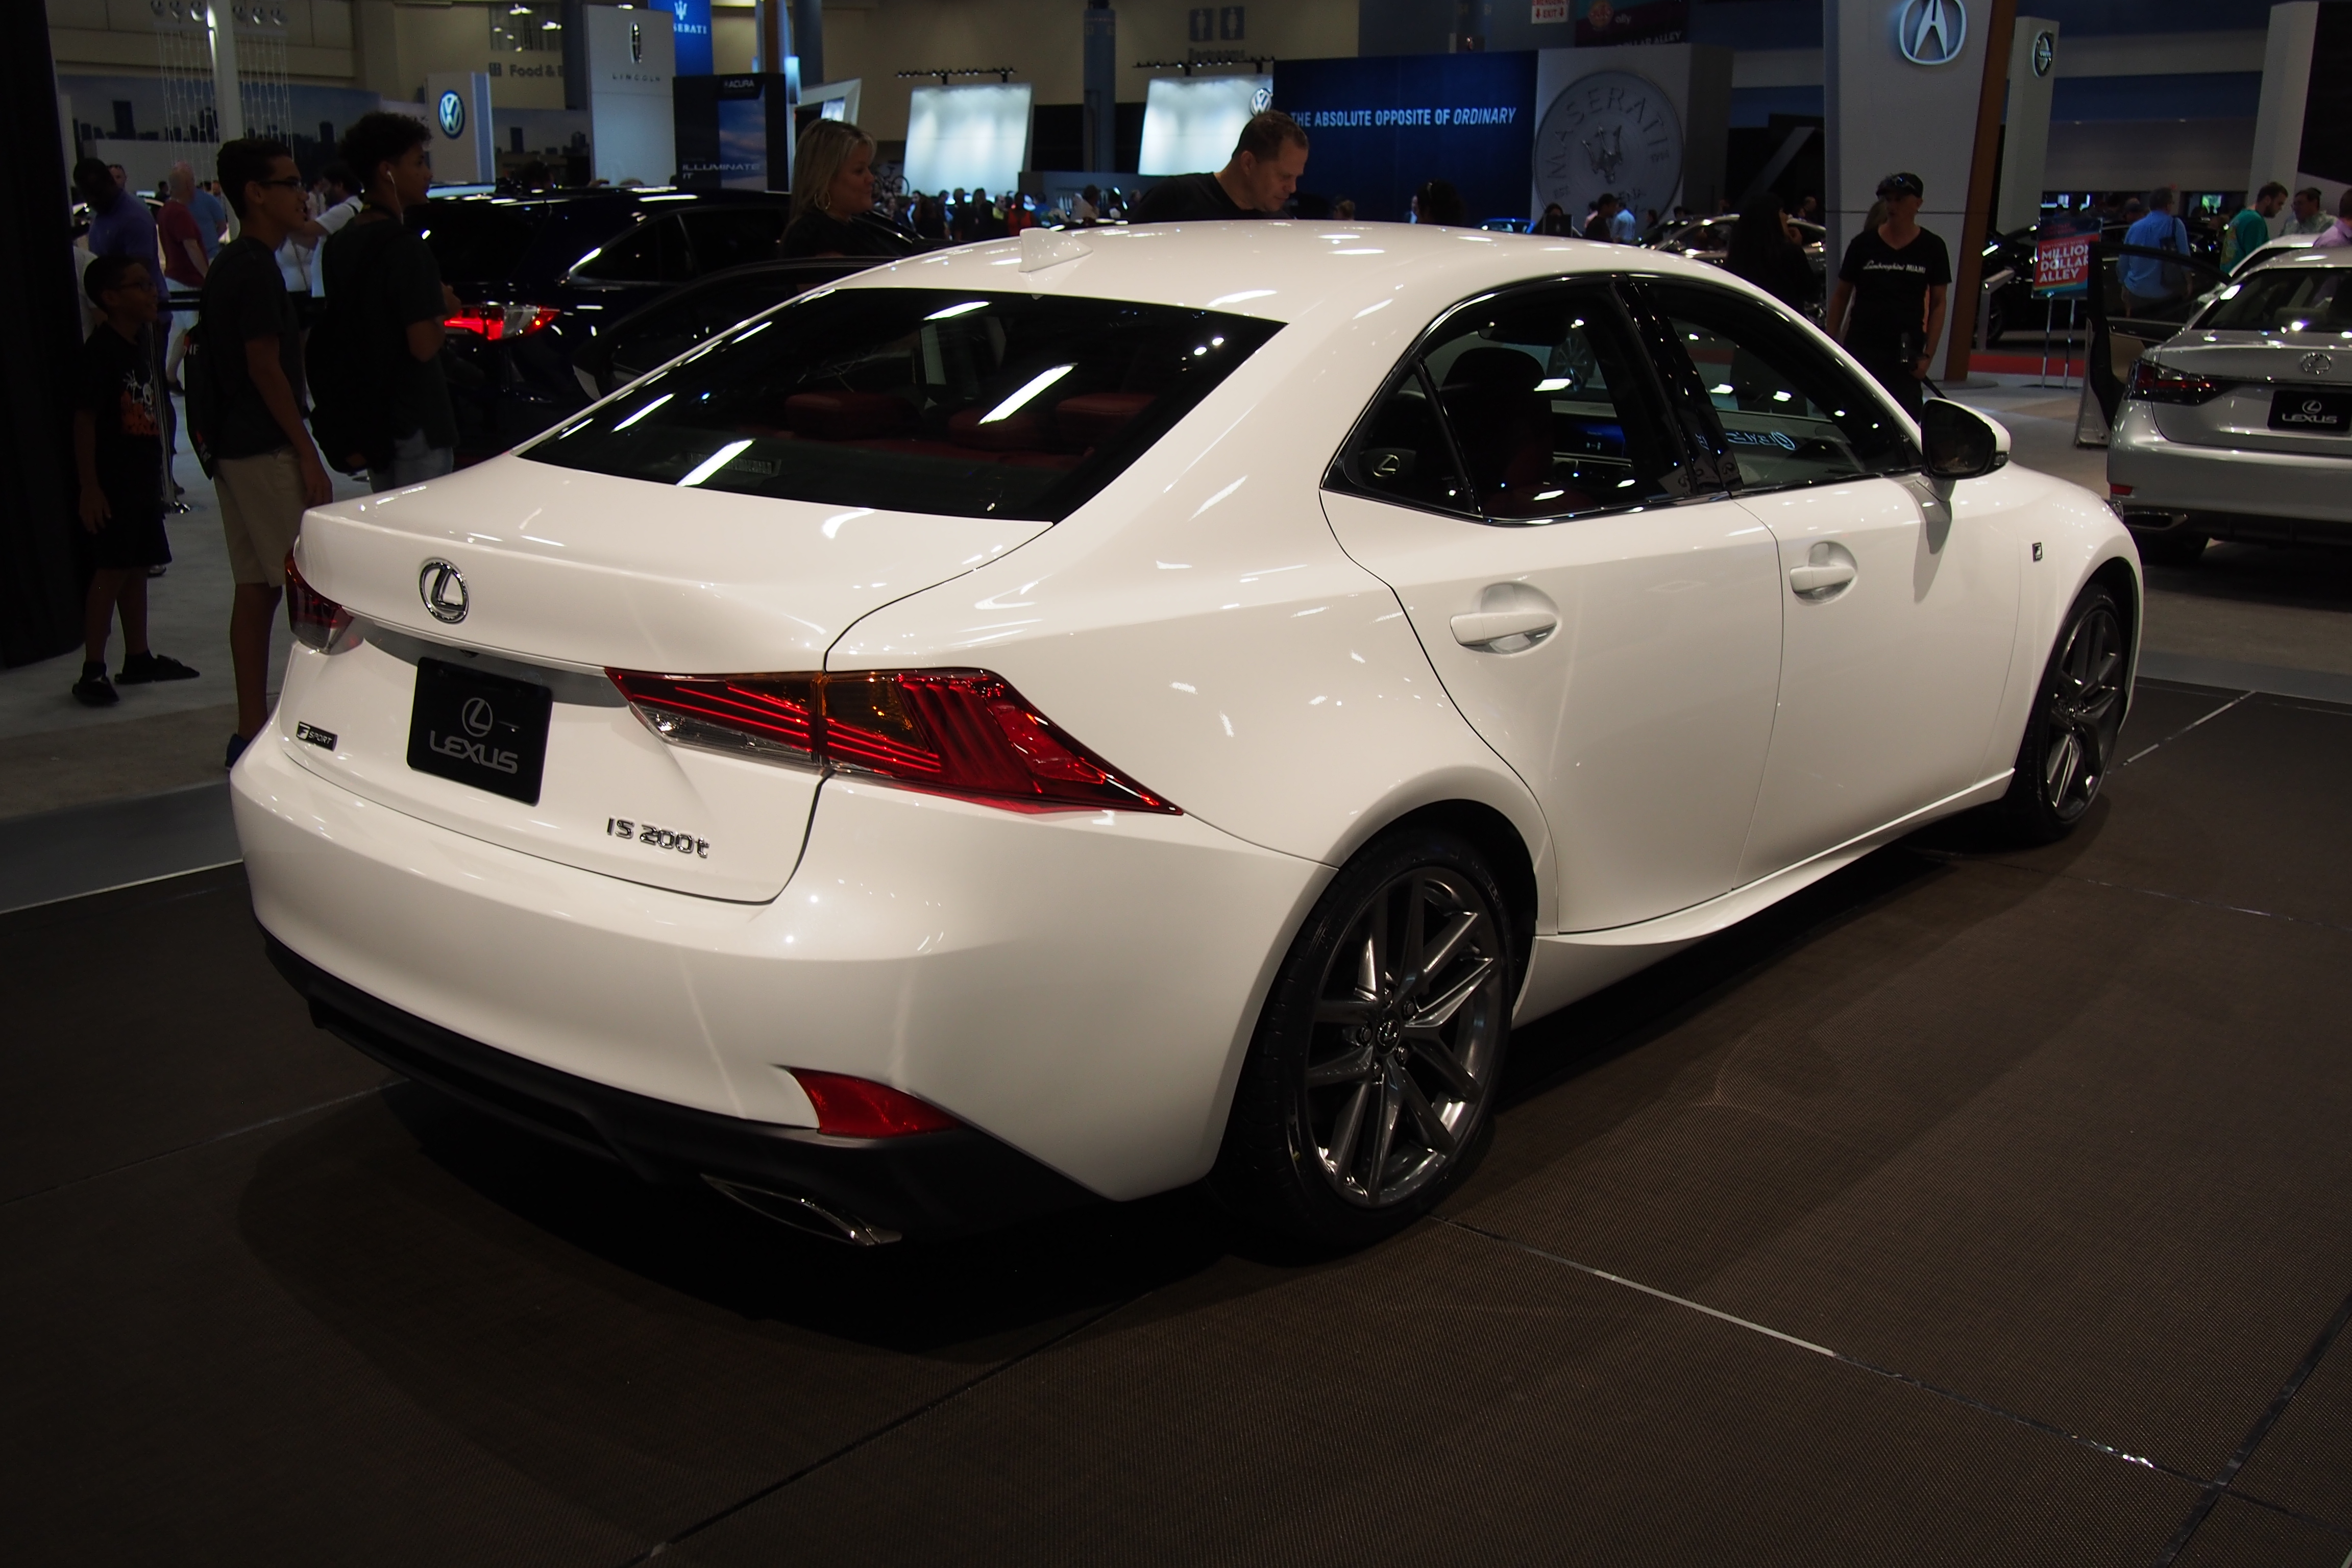 http://www.autoguide.com/blog/wp-content/gallery/2017-lexus-is-live-photos-9-10-2016/2017-Lexus-IS-Rear-02.JPG